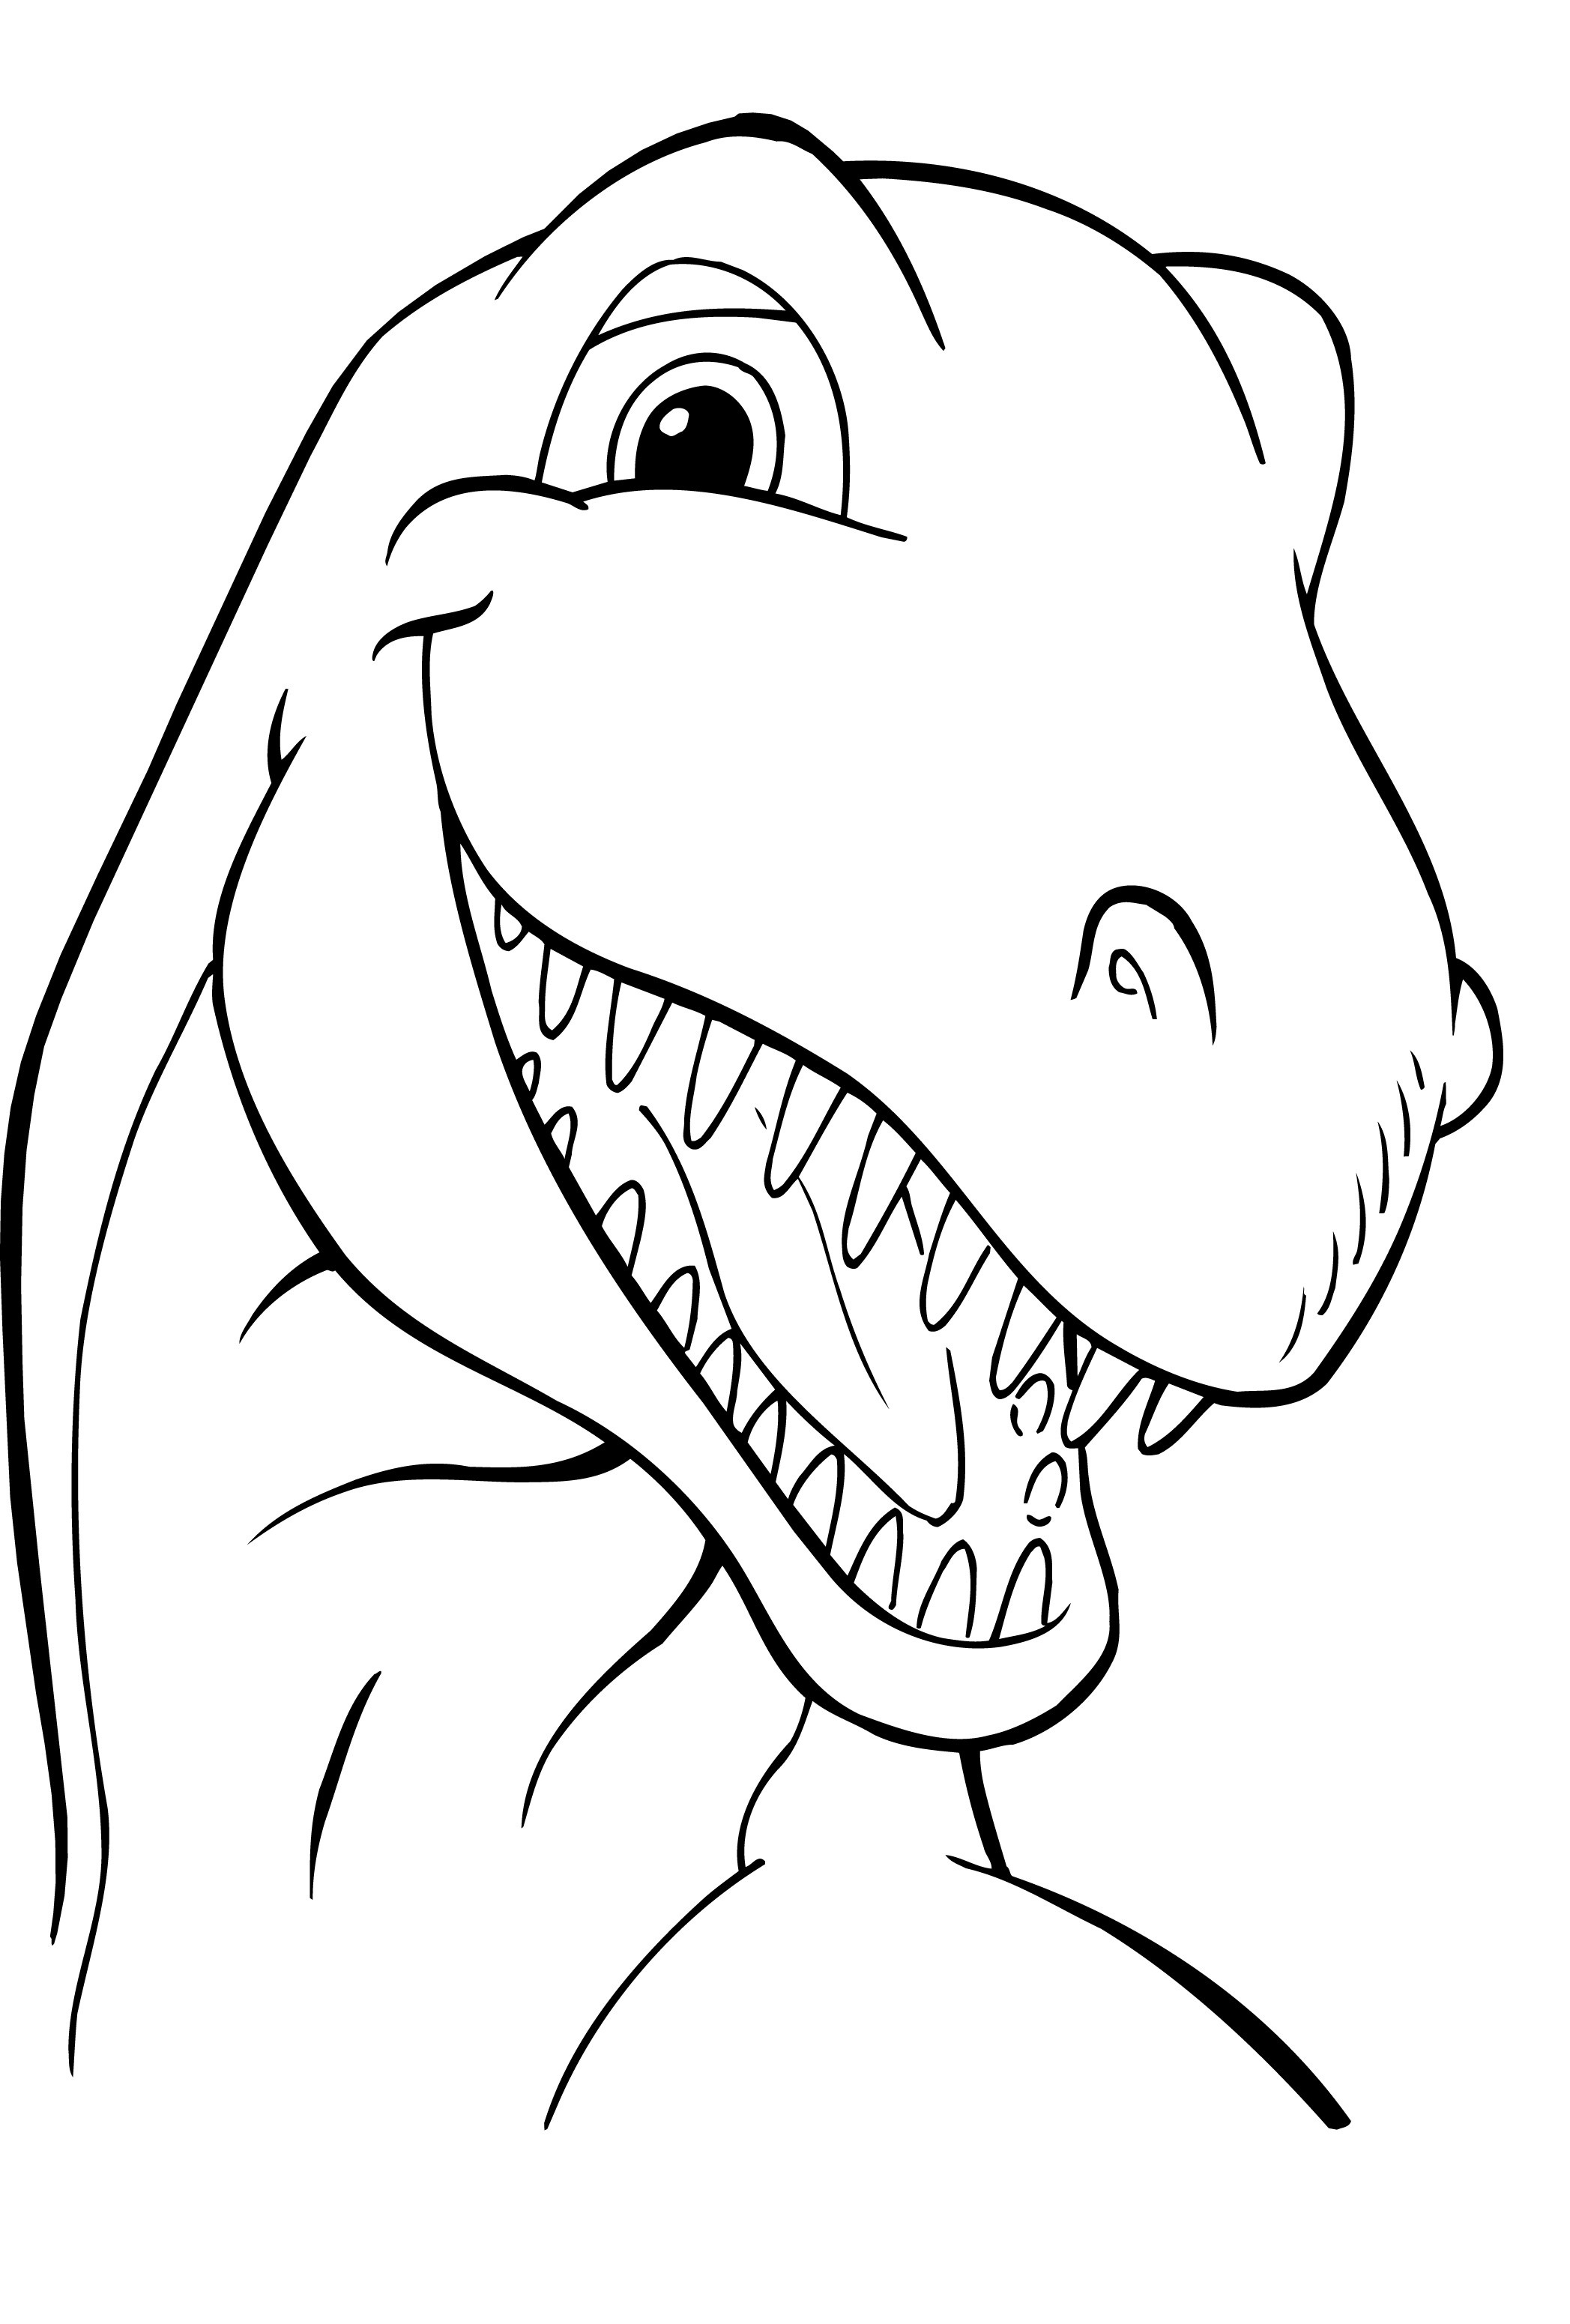 dinsaur coloring pages - photo#26